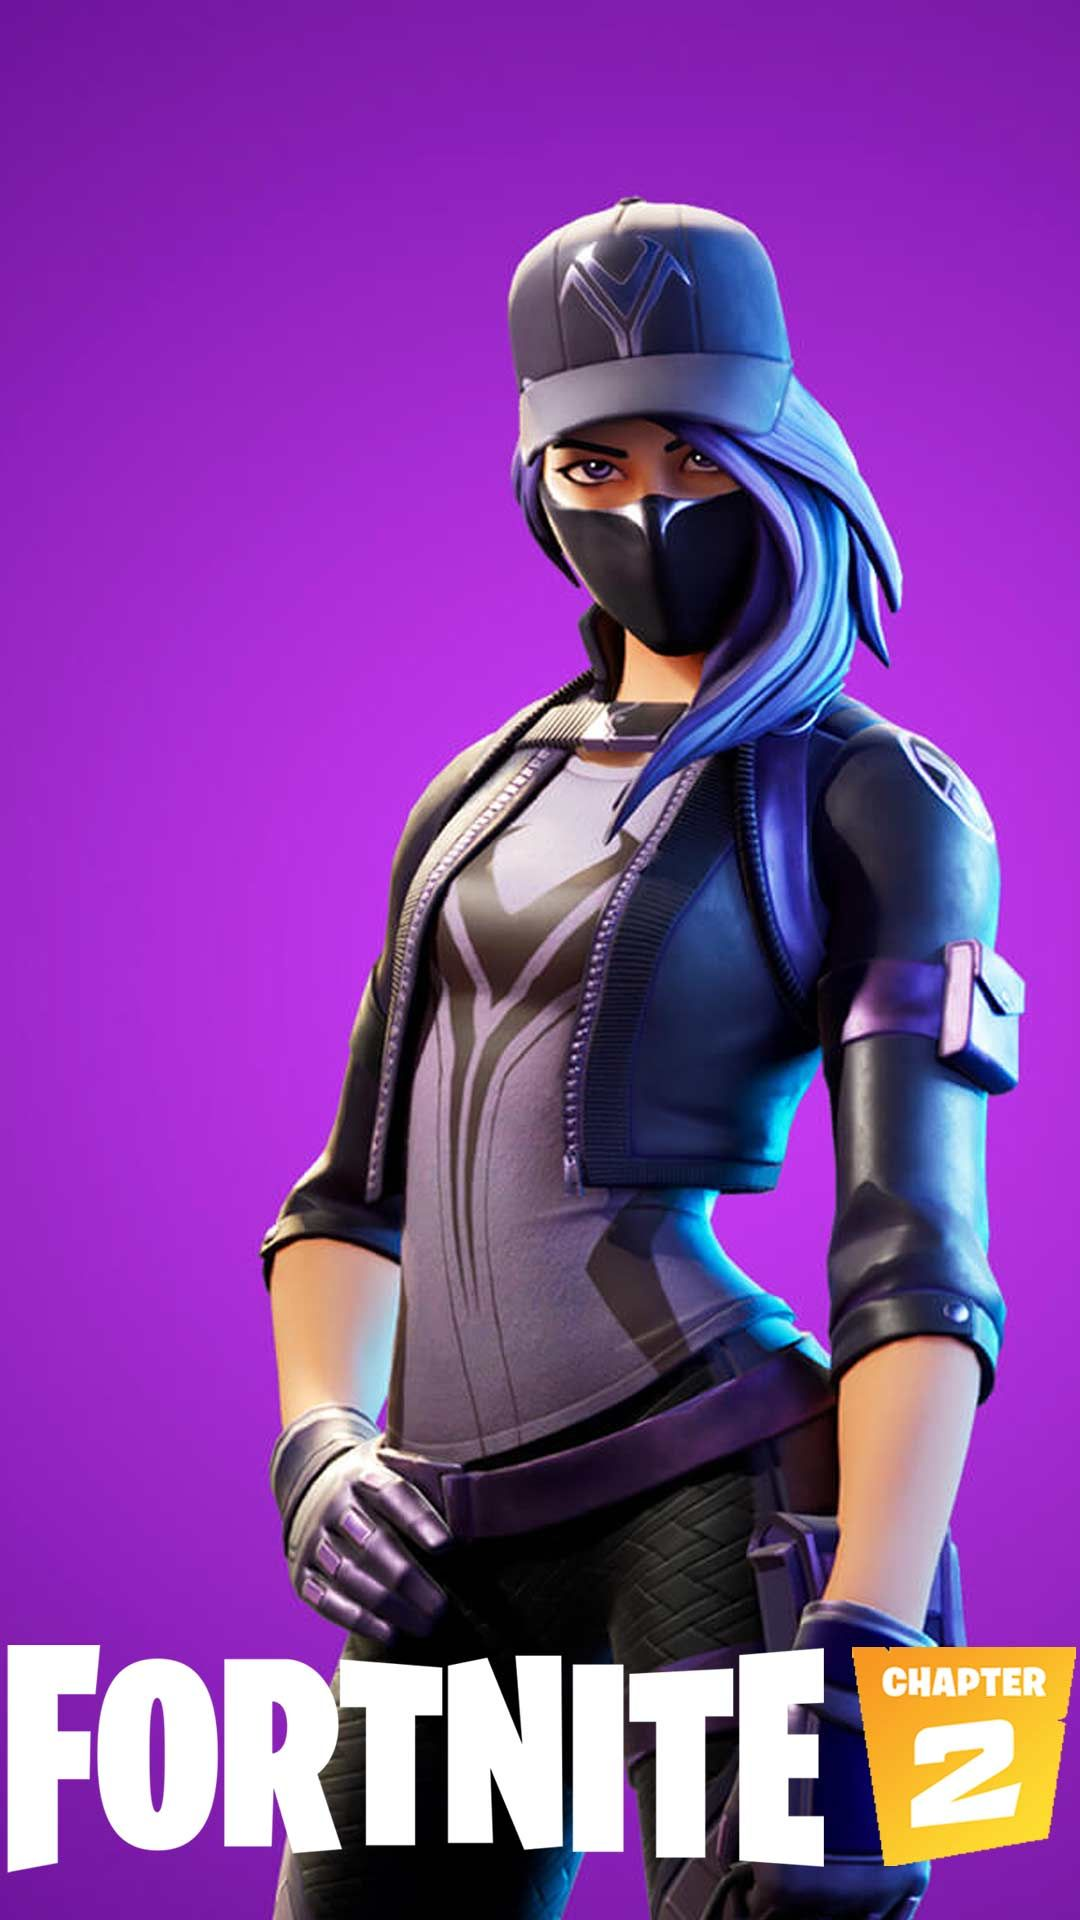 Fortnite Chapter 2 Season 2 Wallpaper Hd Phone Backgrounds Lock Screen Art For Iphone Android Skin Images Hd Phone Backgrounds Best Gaming Wallpapers